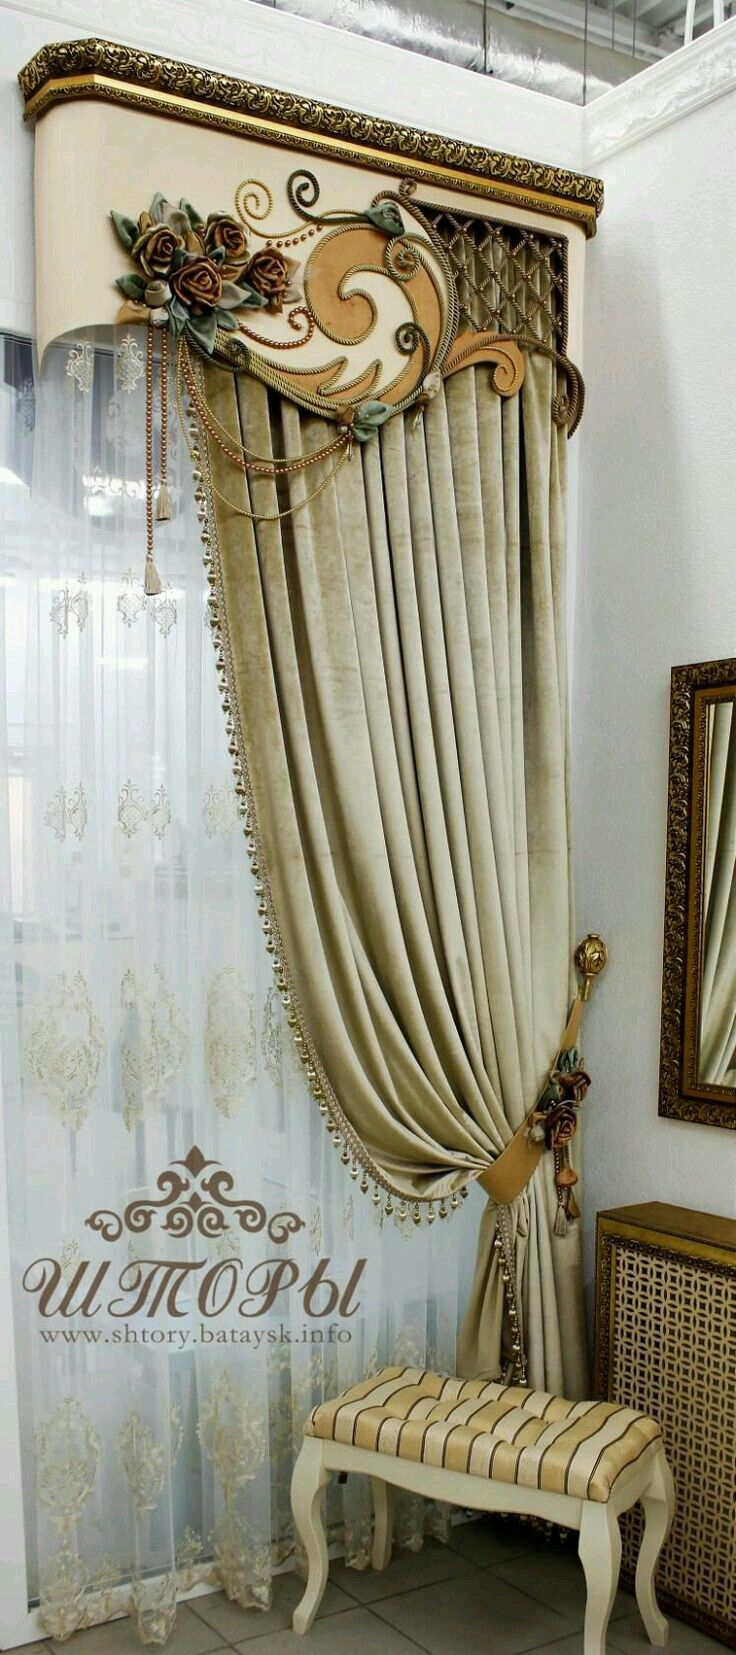 Window covering ideas  pin by ahlamarab on home decorating u desing in   pinterest